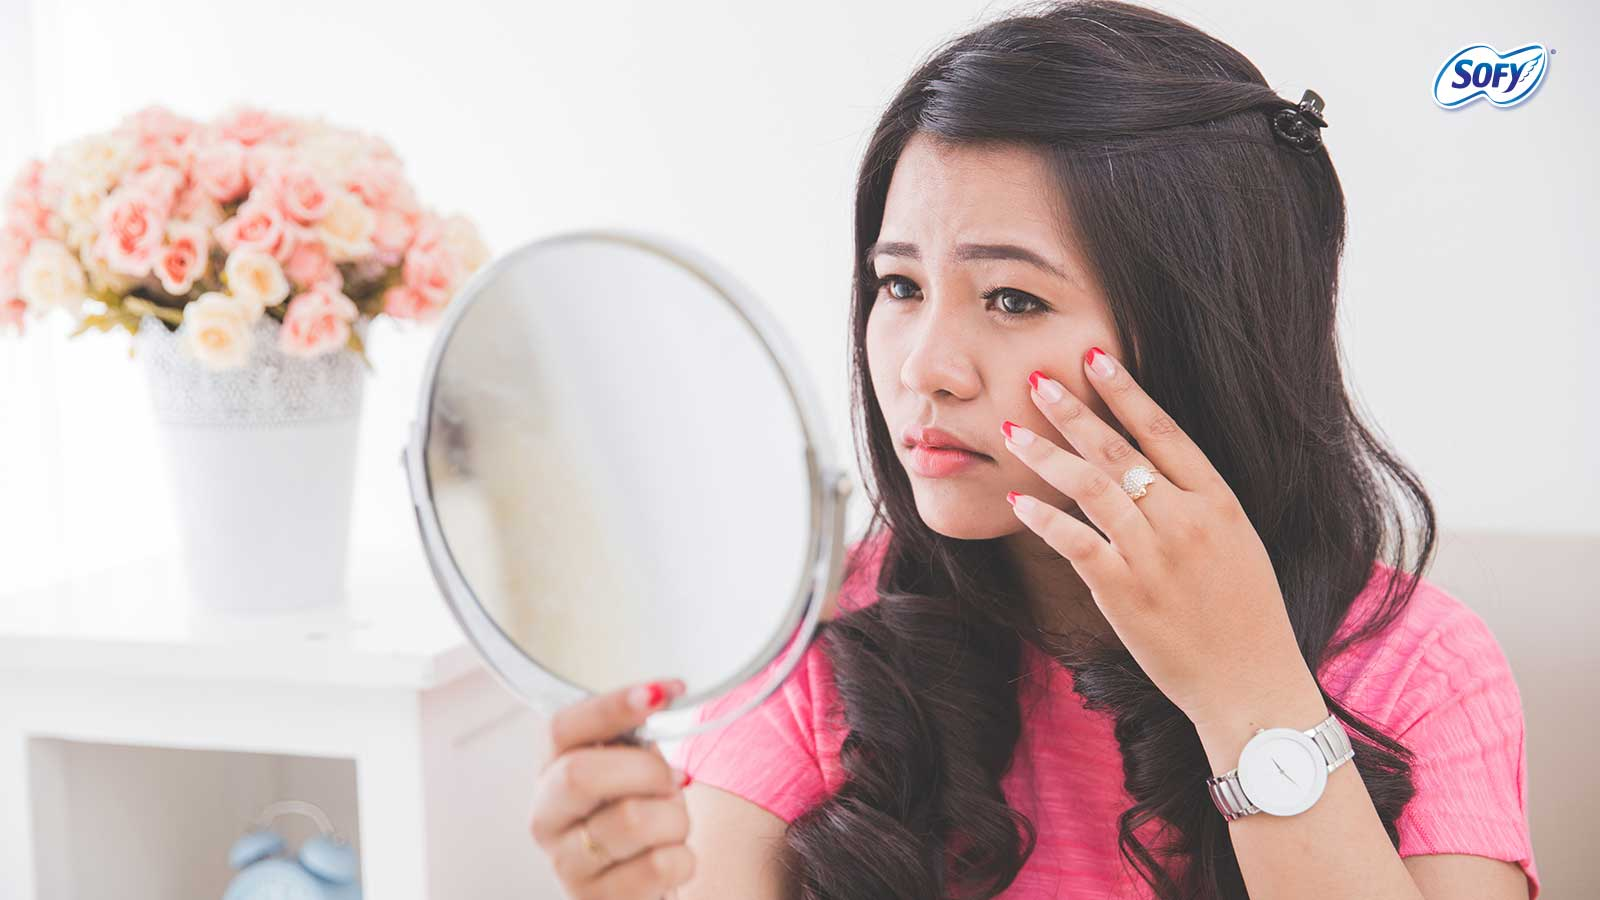 How to deal with acne breakout during puberty